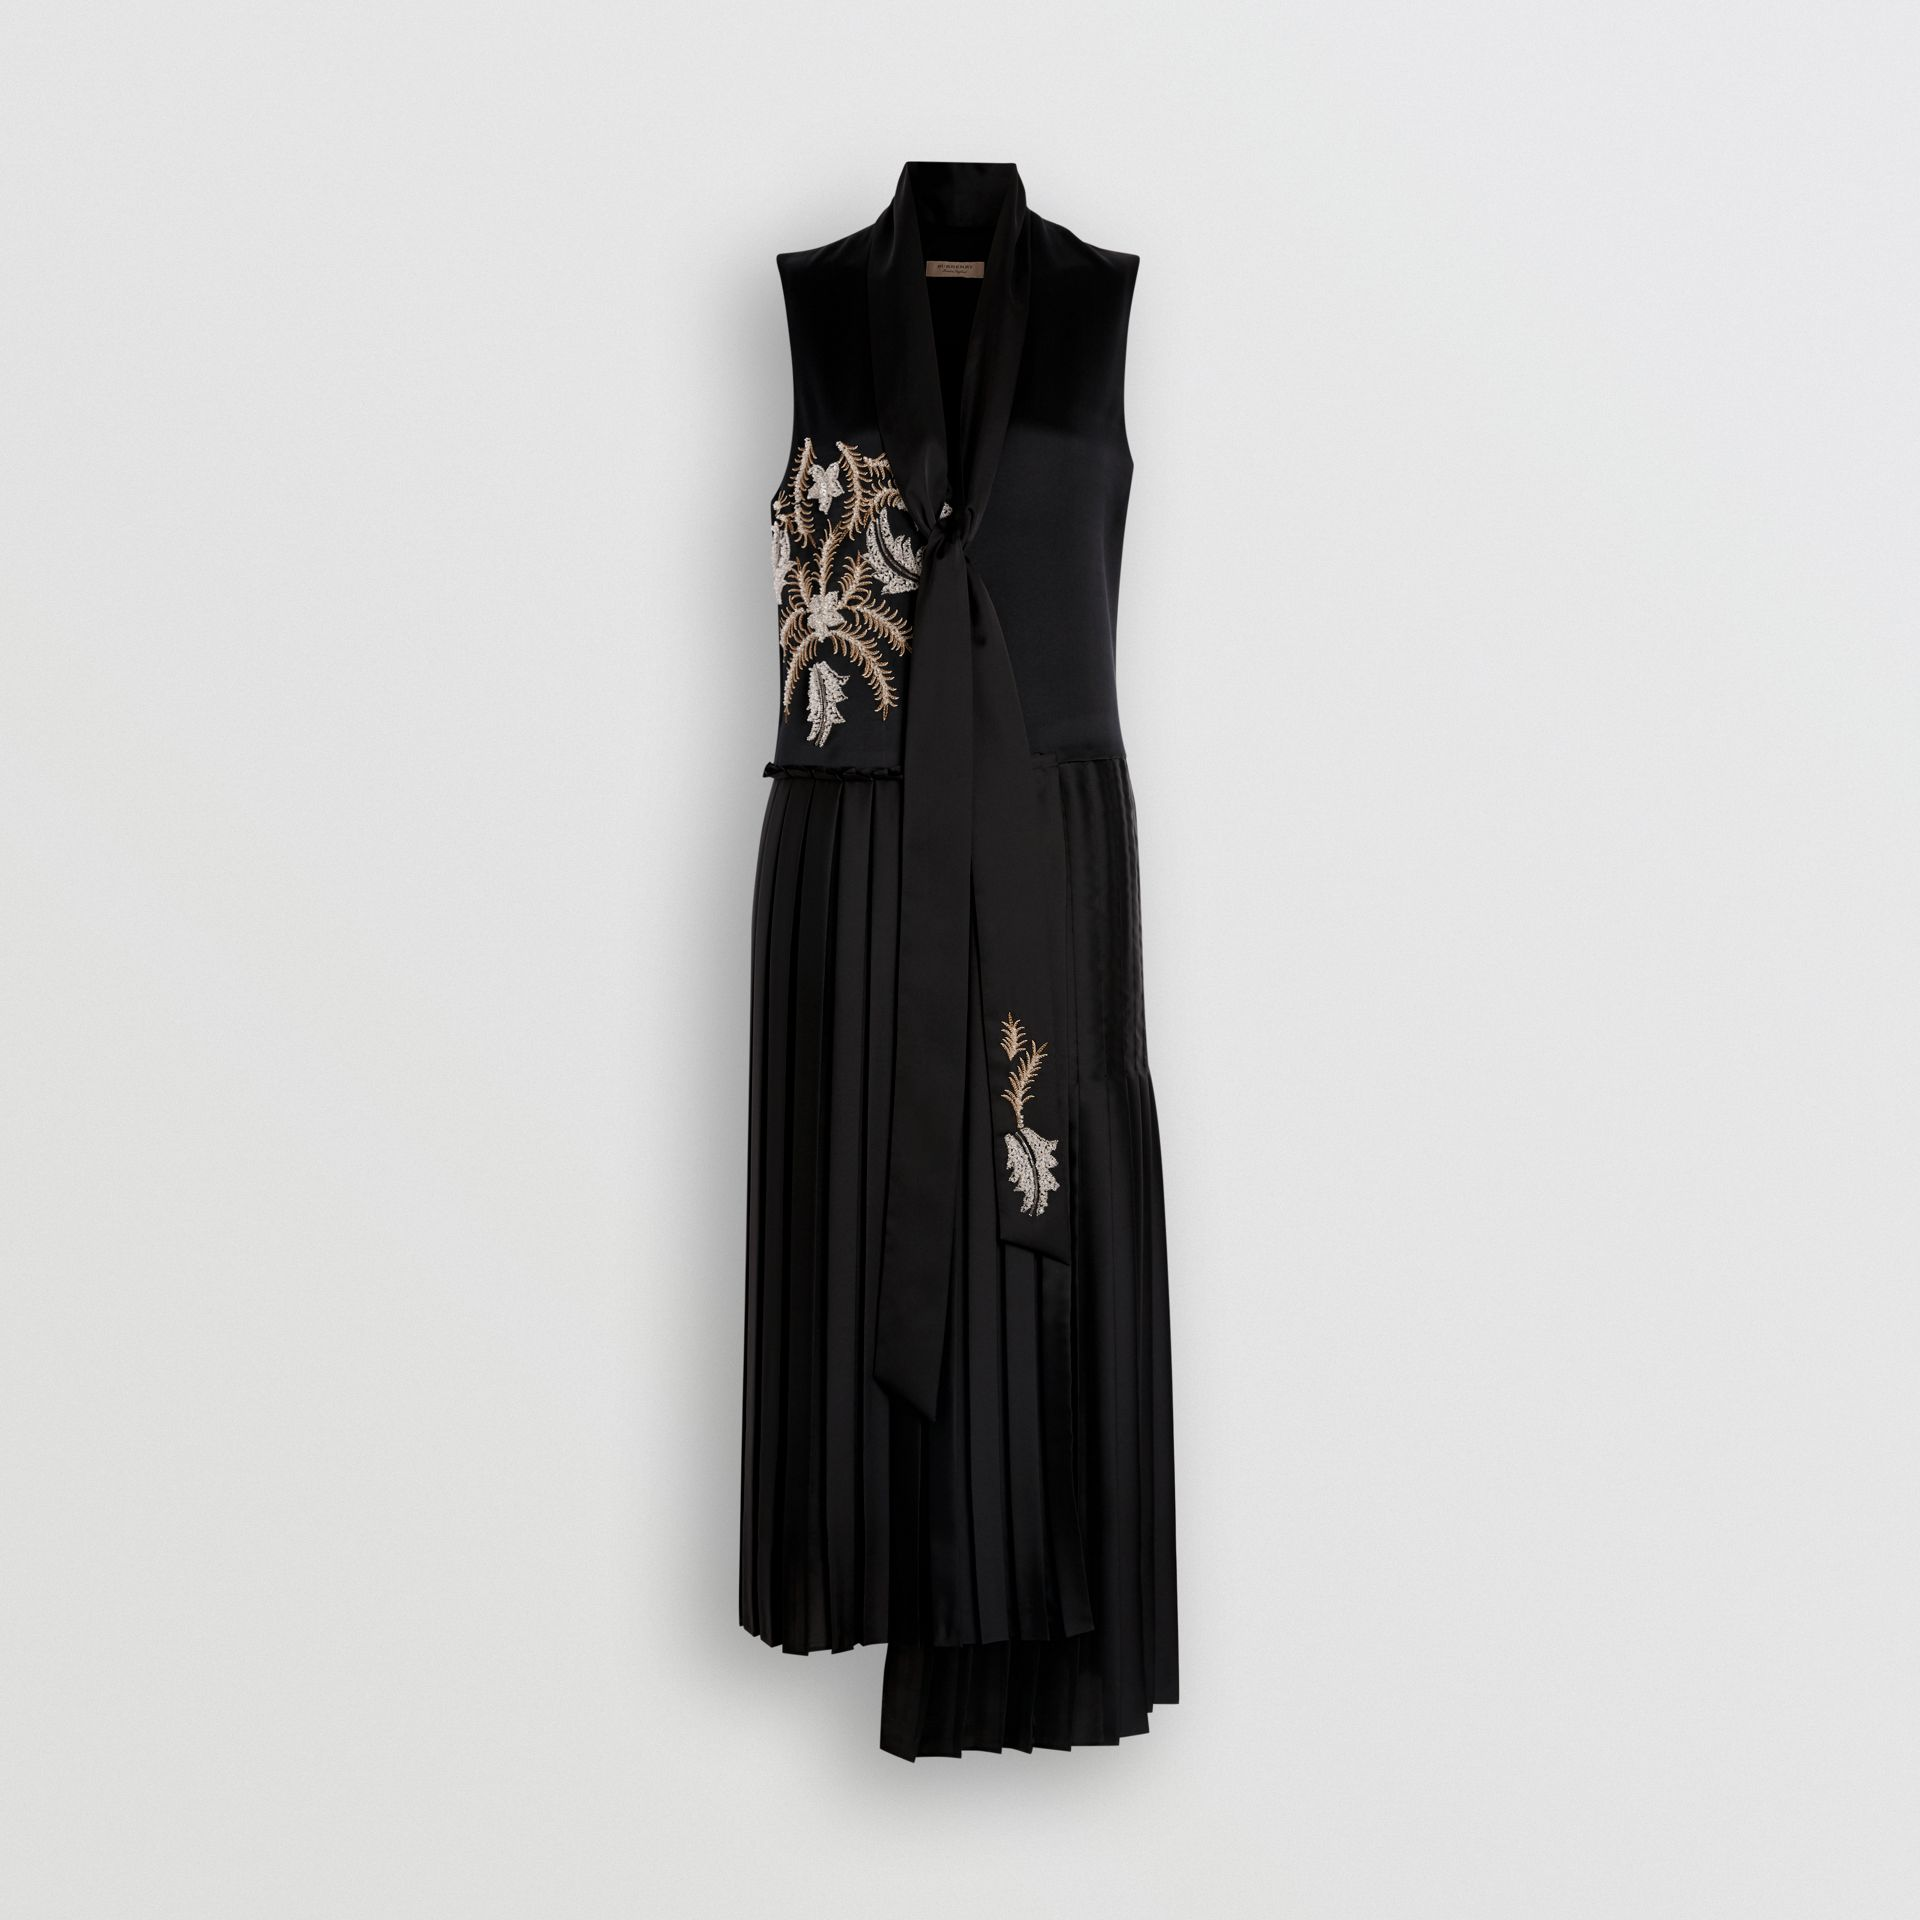 Bead-embellished Silk Satin Asymmetric Dress in Black - Women | Burberry United Kingdom - gallery image 3